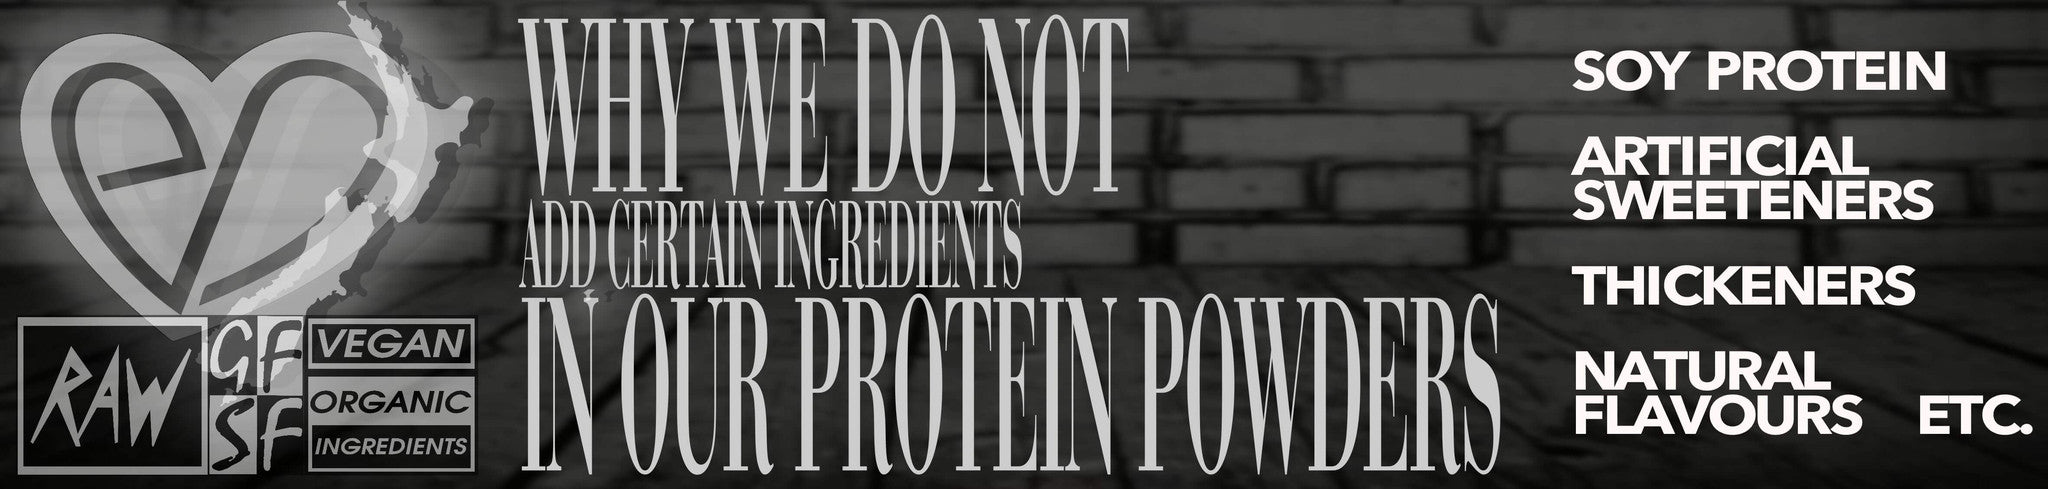 Why We Don't Add These Ingredients In Our Protein Powders